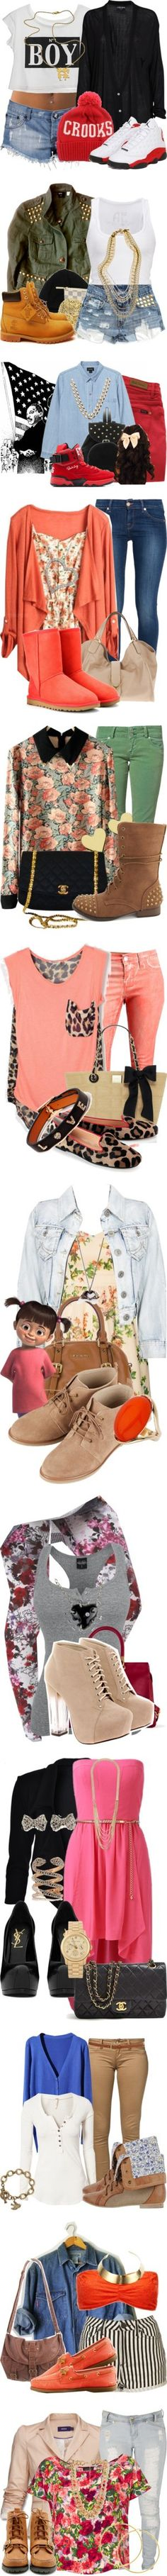 """""""What I'd Wear!"""" by nay-be-mee ❤ liked on Polyvore"""